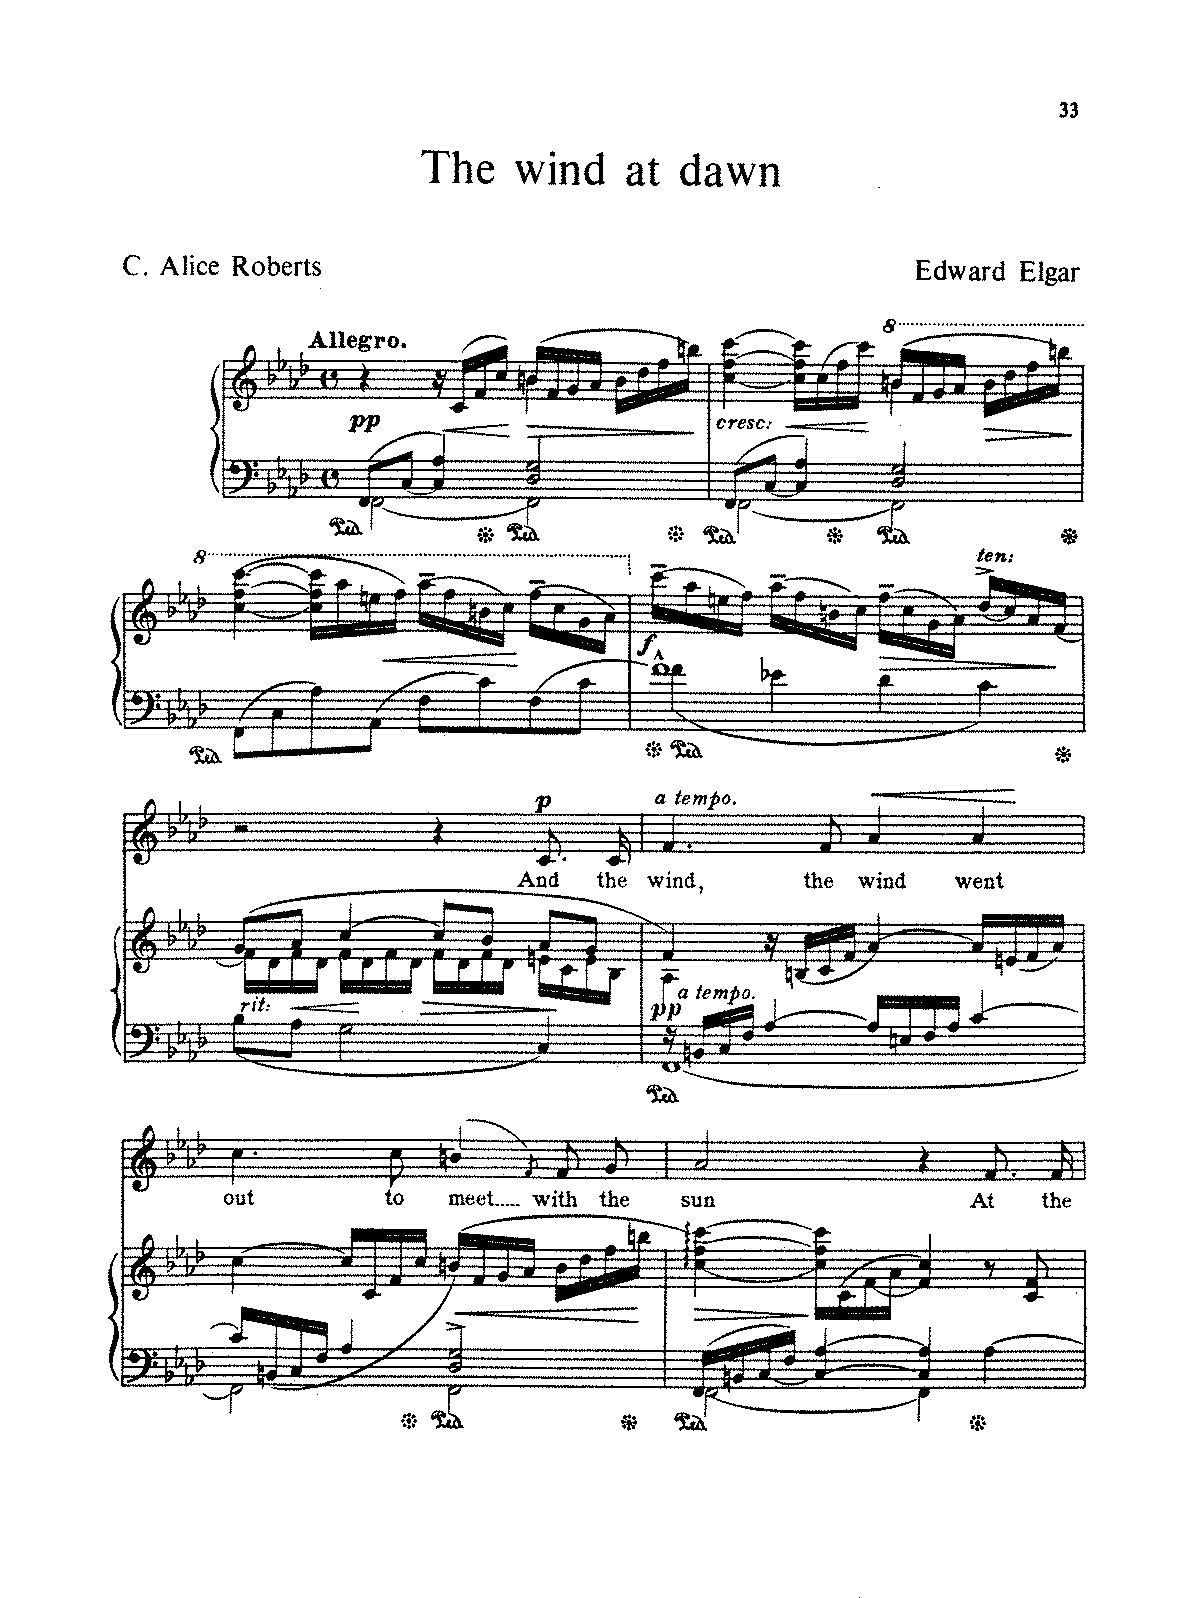 PMLP118013-Elgar - The wind at dawn (voice and piano).pdf